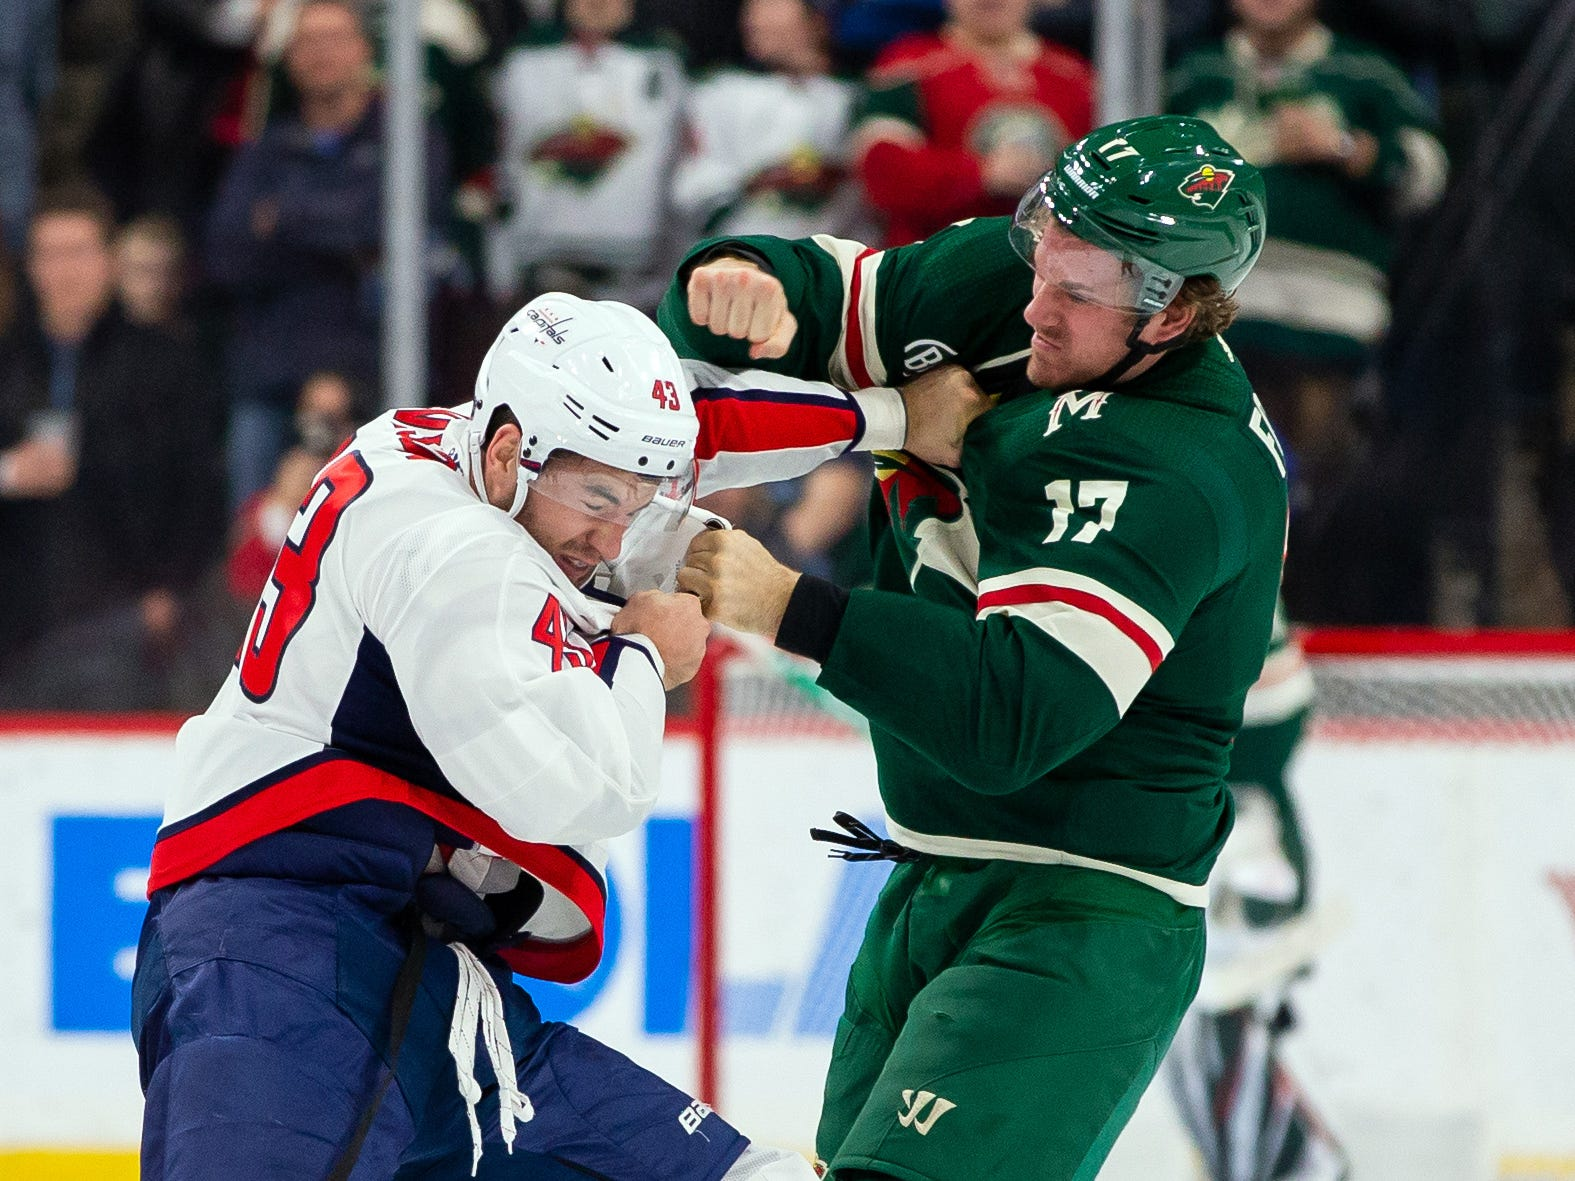 Nov. 13: Capitals' Tom Wilson vs. Wild's Marcus Foligno.